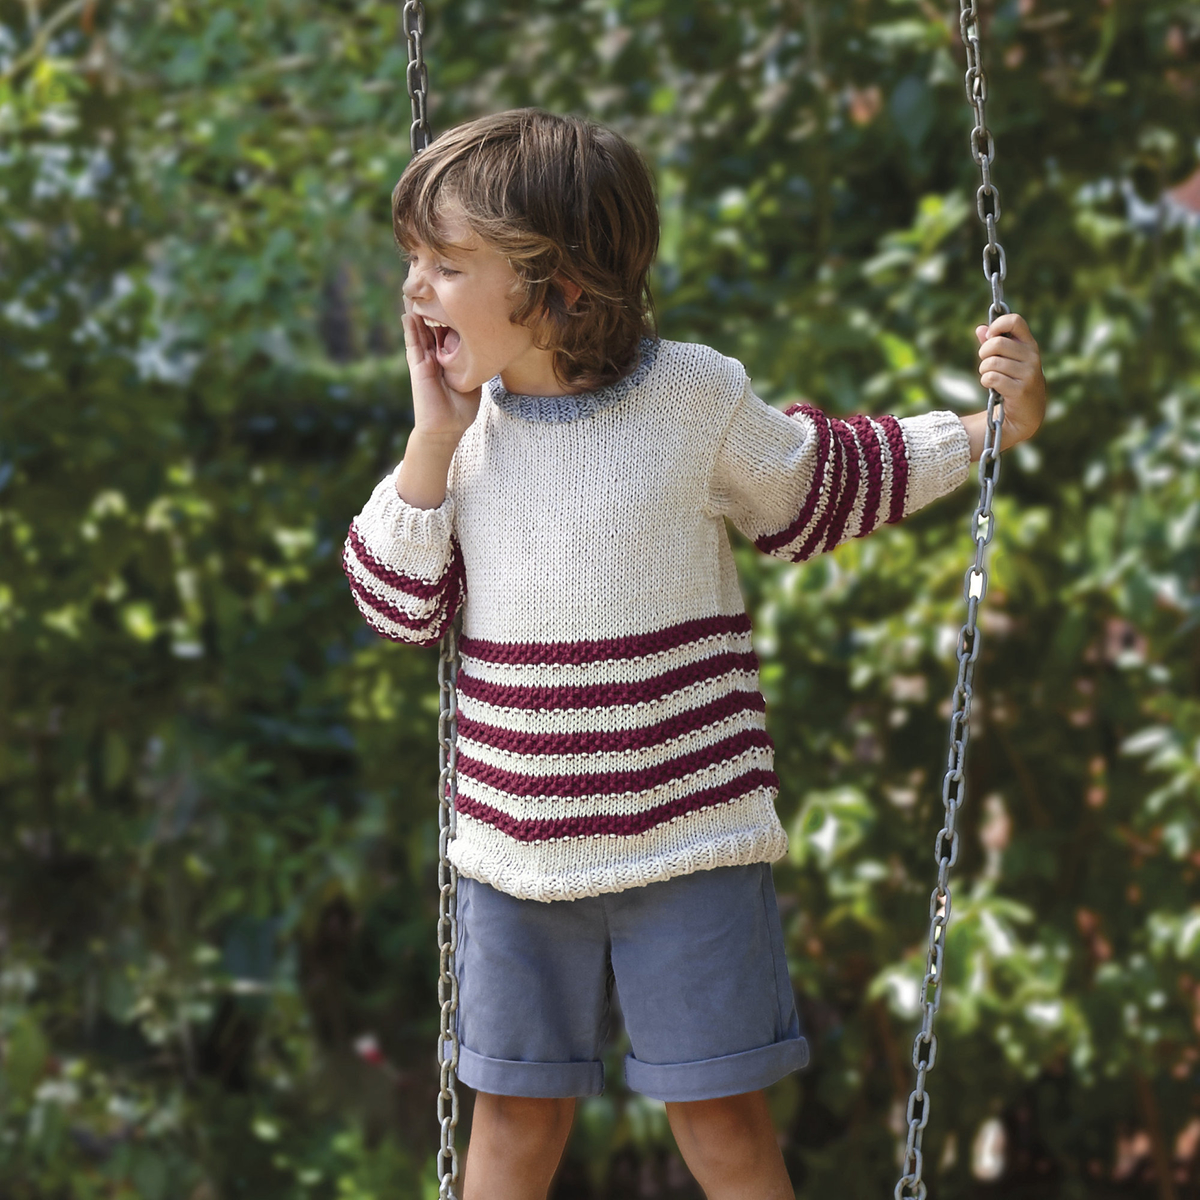 Knit a child's jumper with appealing stripes